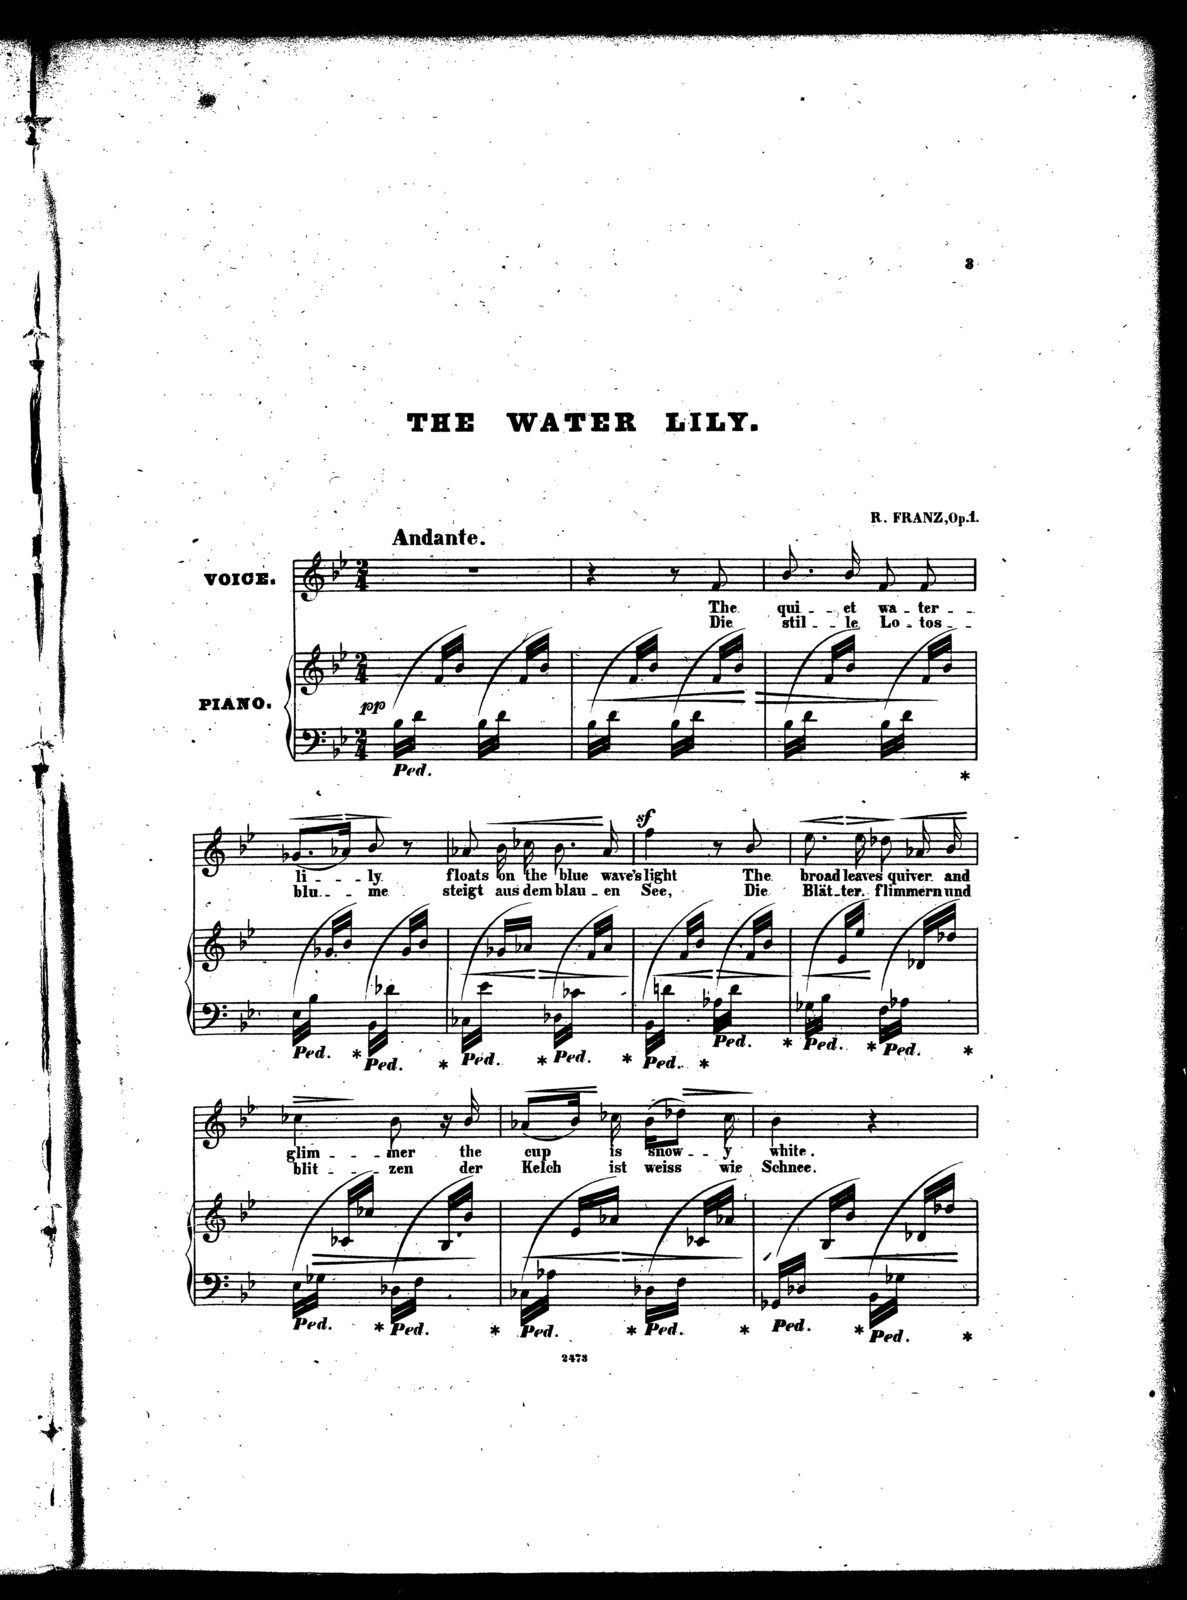 The  water lily, op. 1